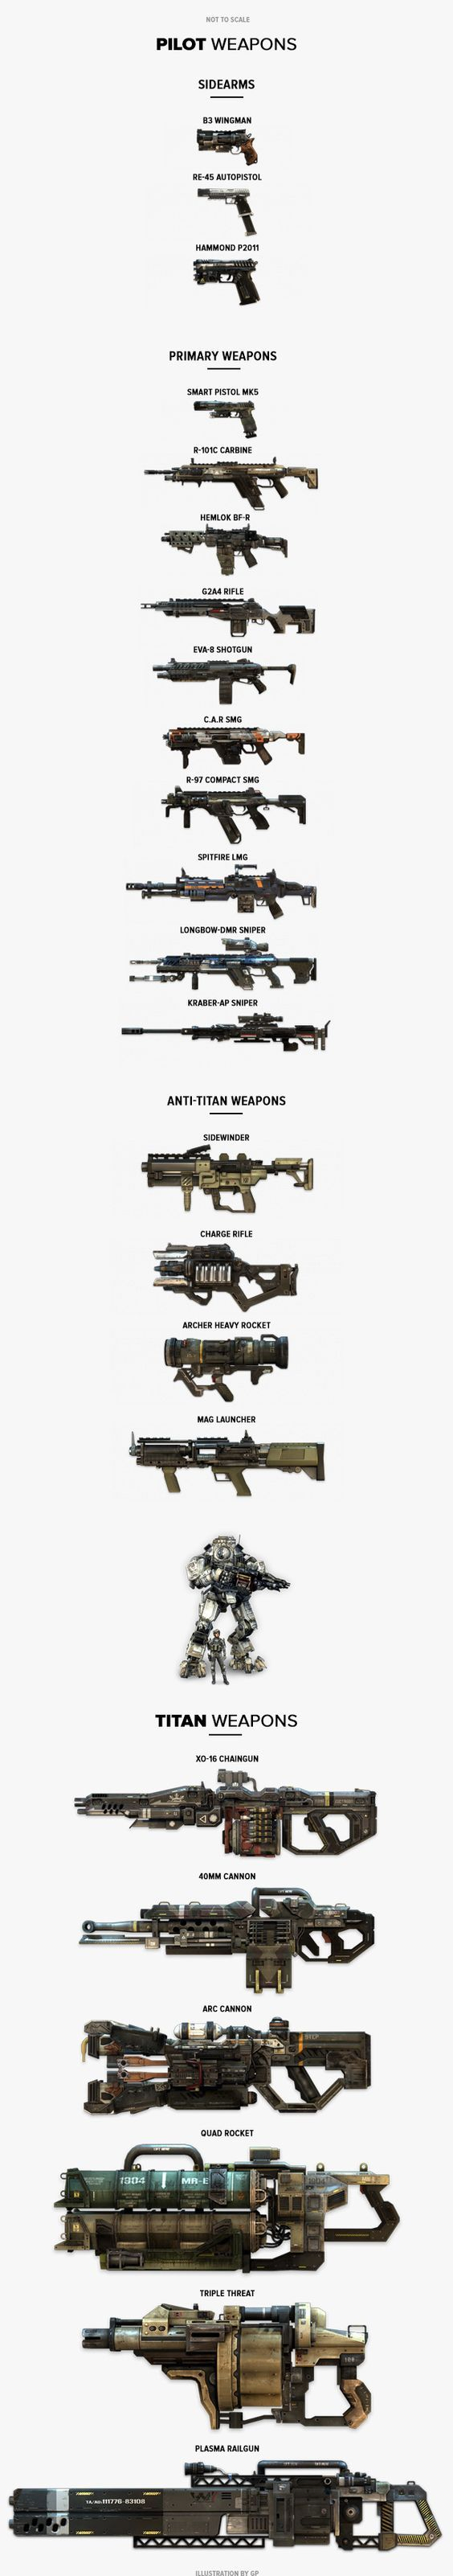 titanfall weapons: